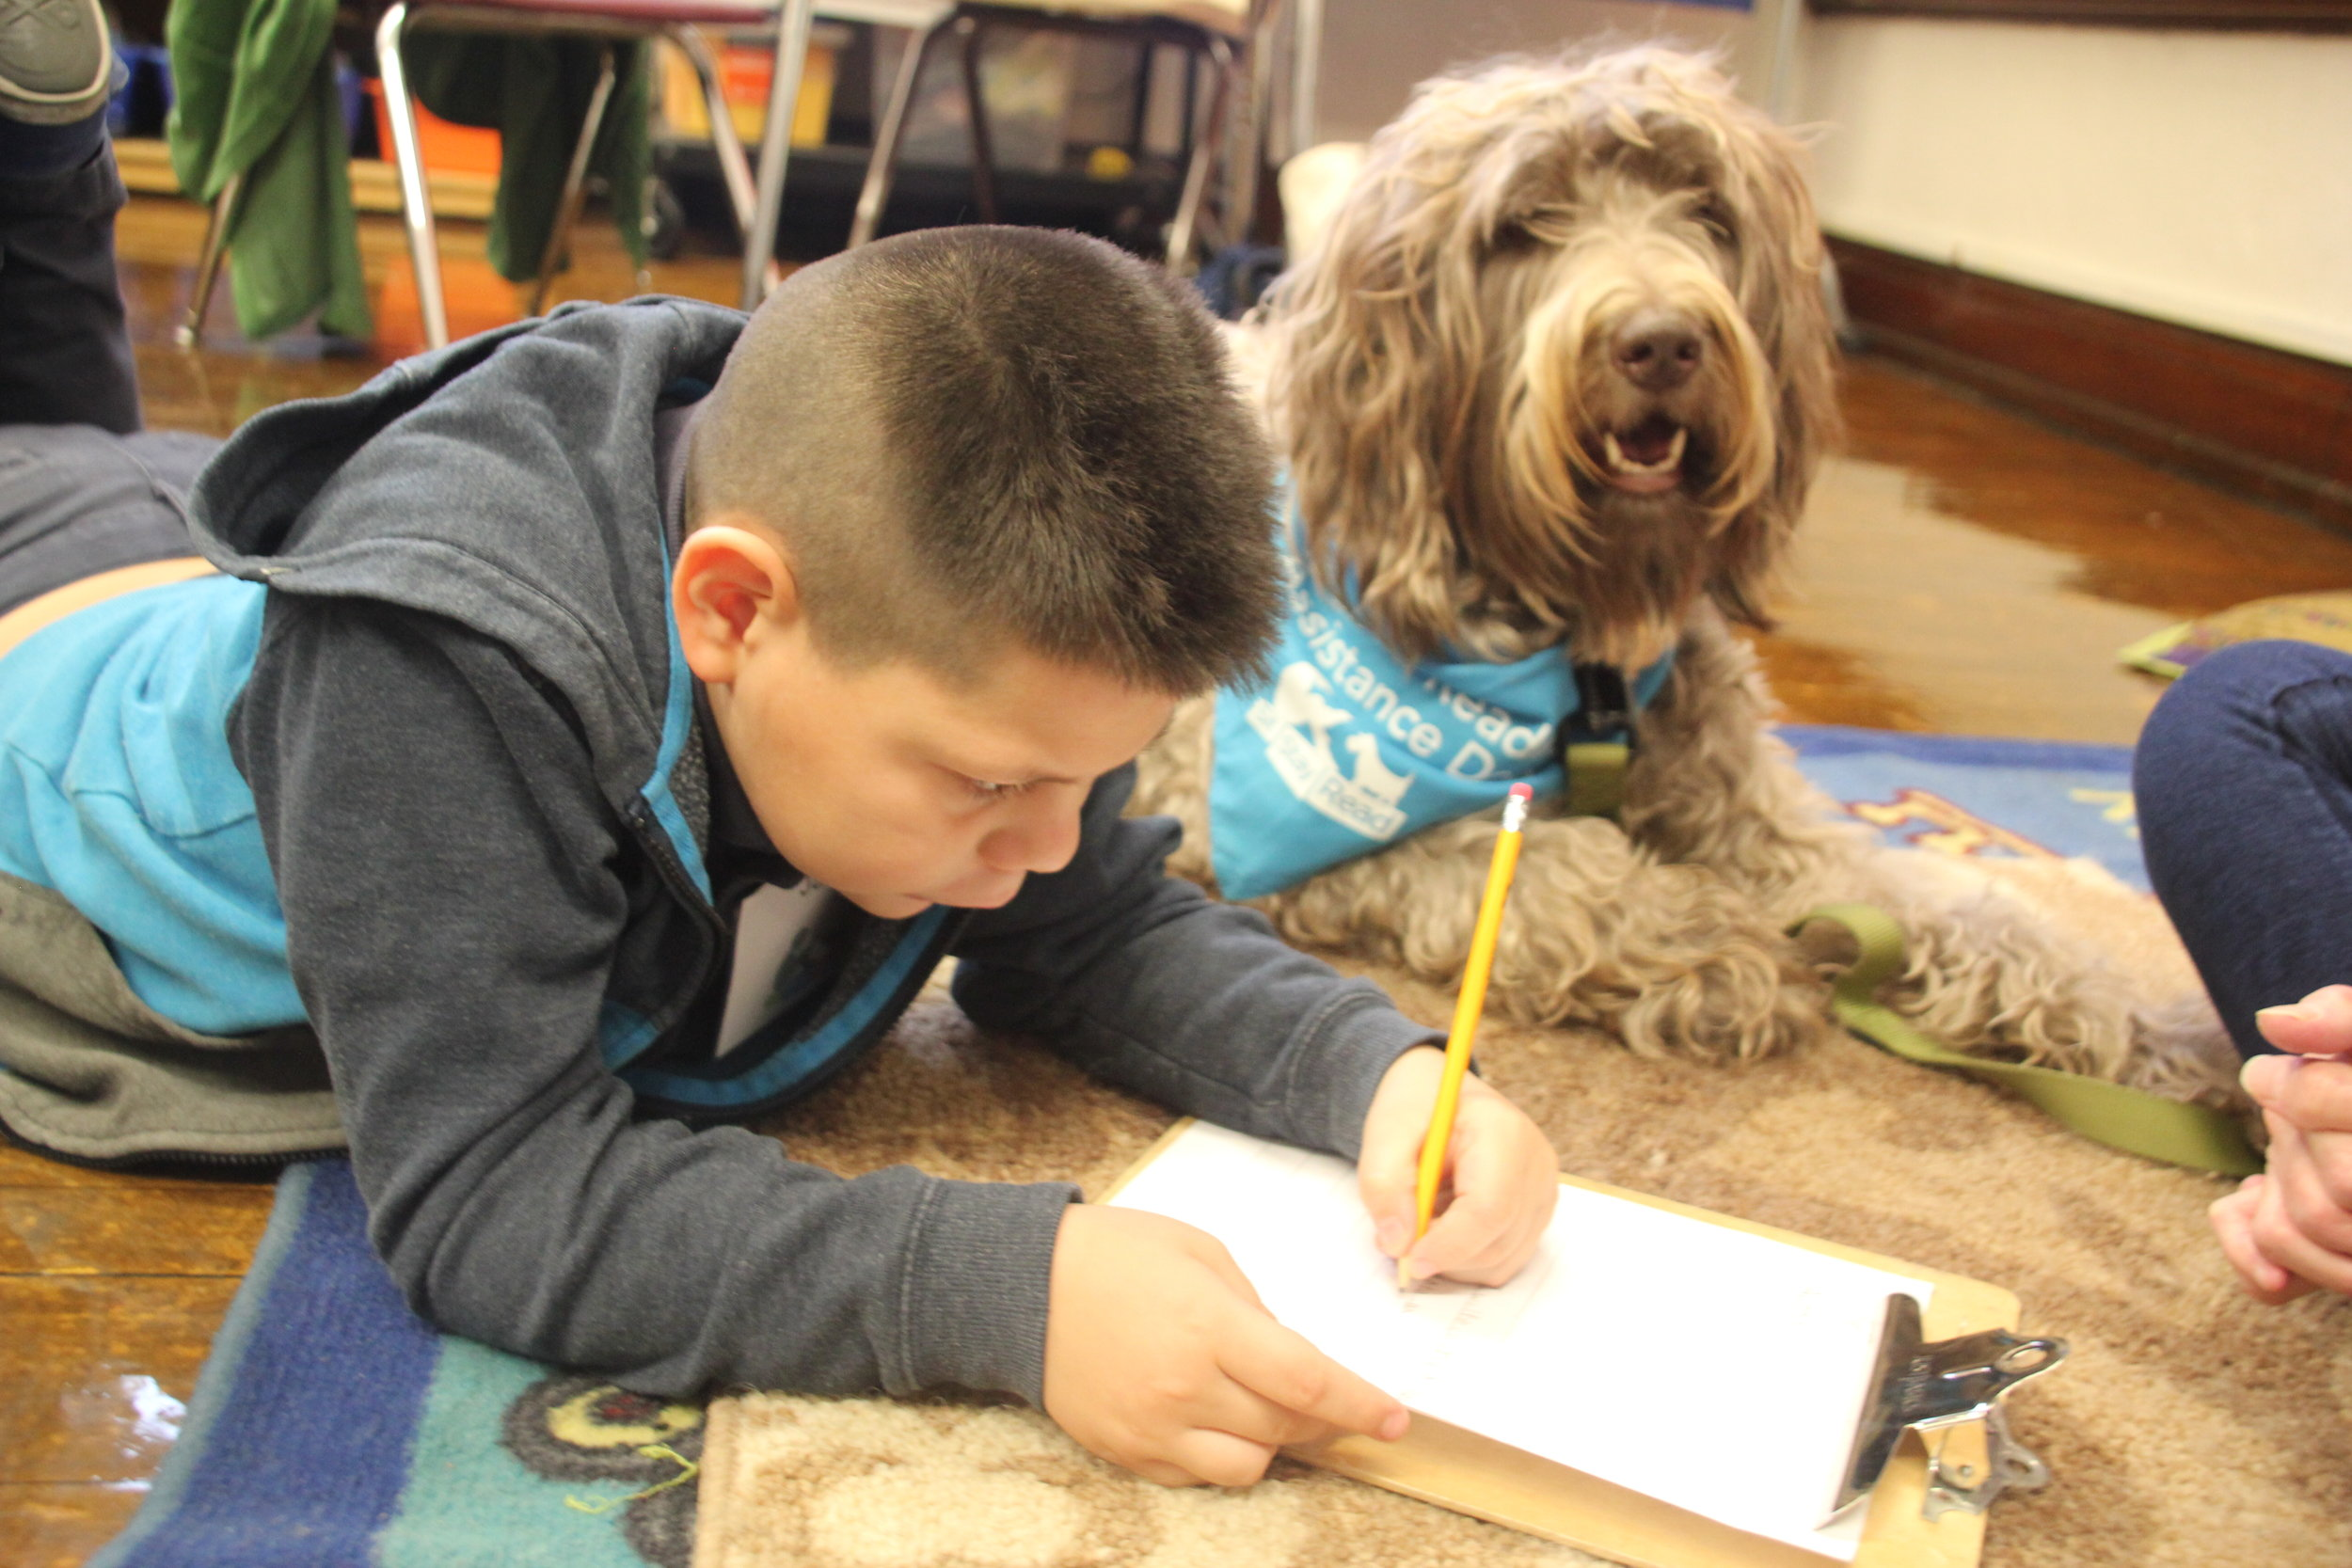 Second-grader Jario eagerly writes his story with the help of Certified Reading Assistance Dog Sylvia.